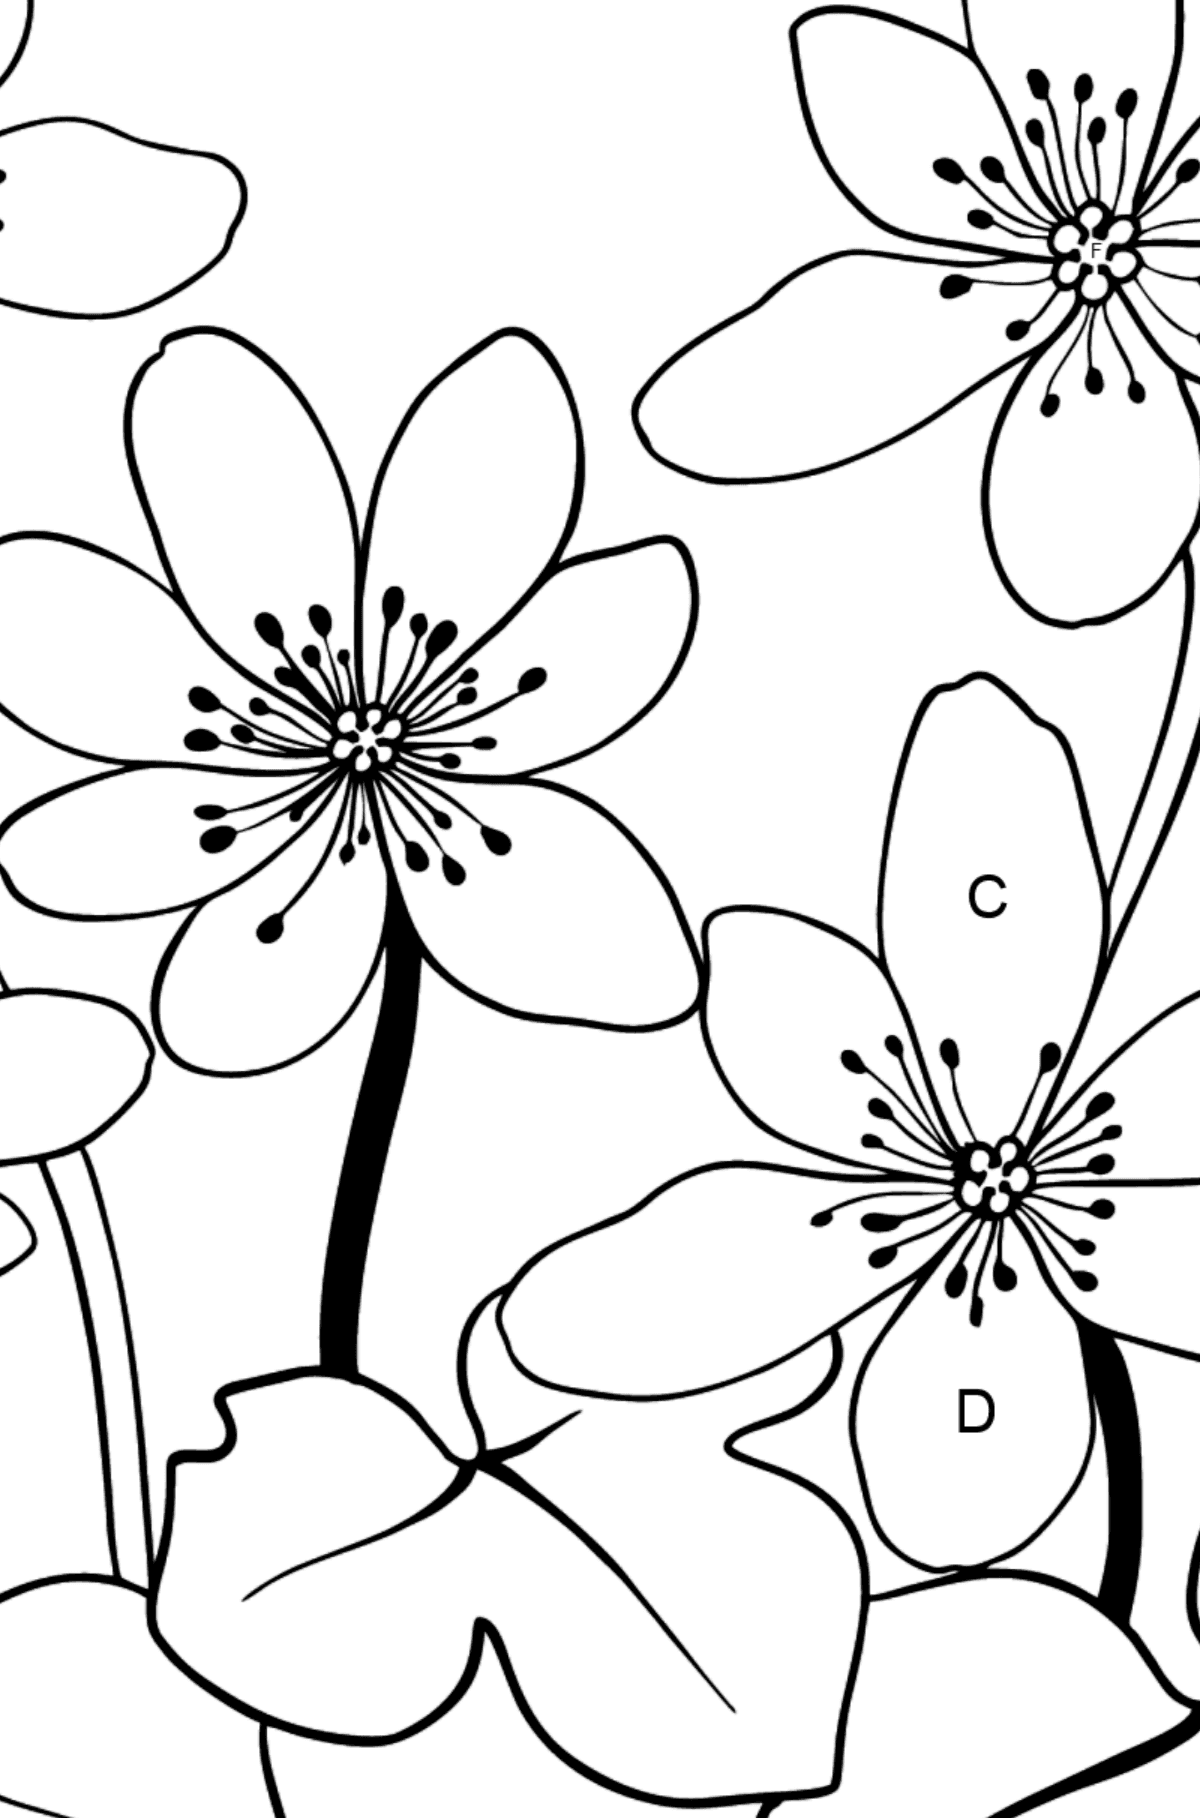 Flower Coloring Page - A Yellow and Orange Hepatica - Coloring by Letters for Kids